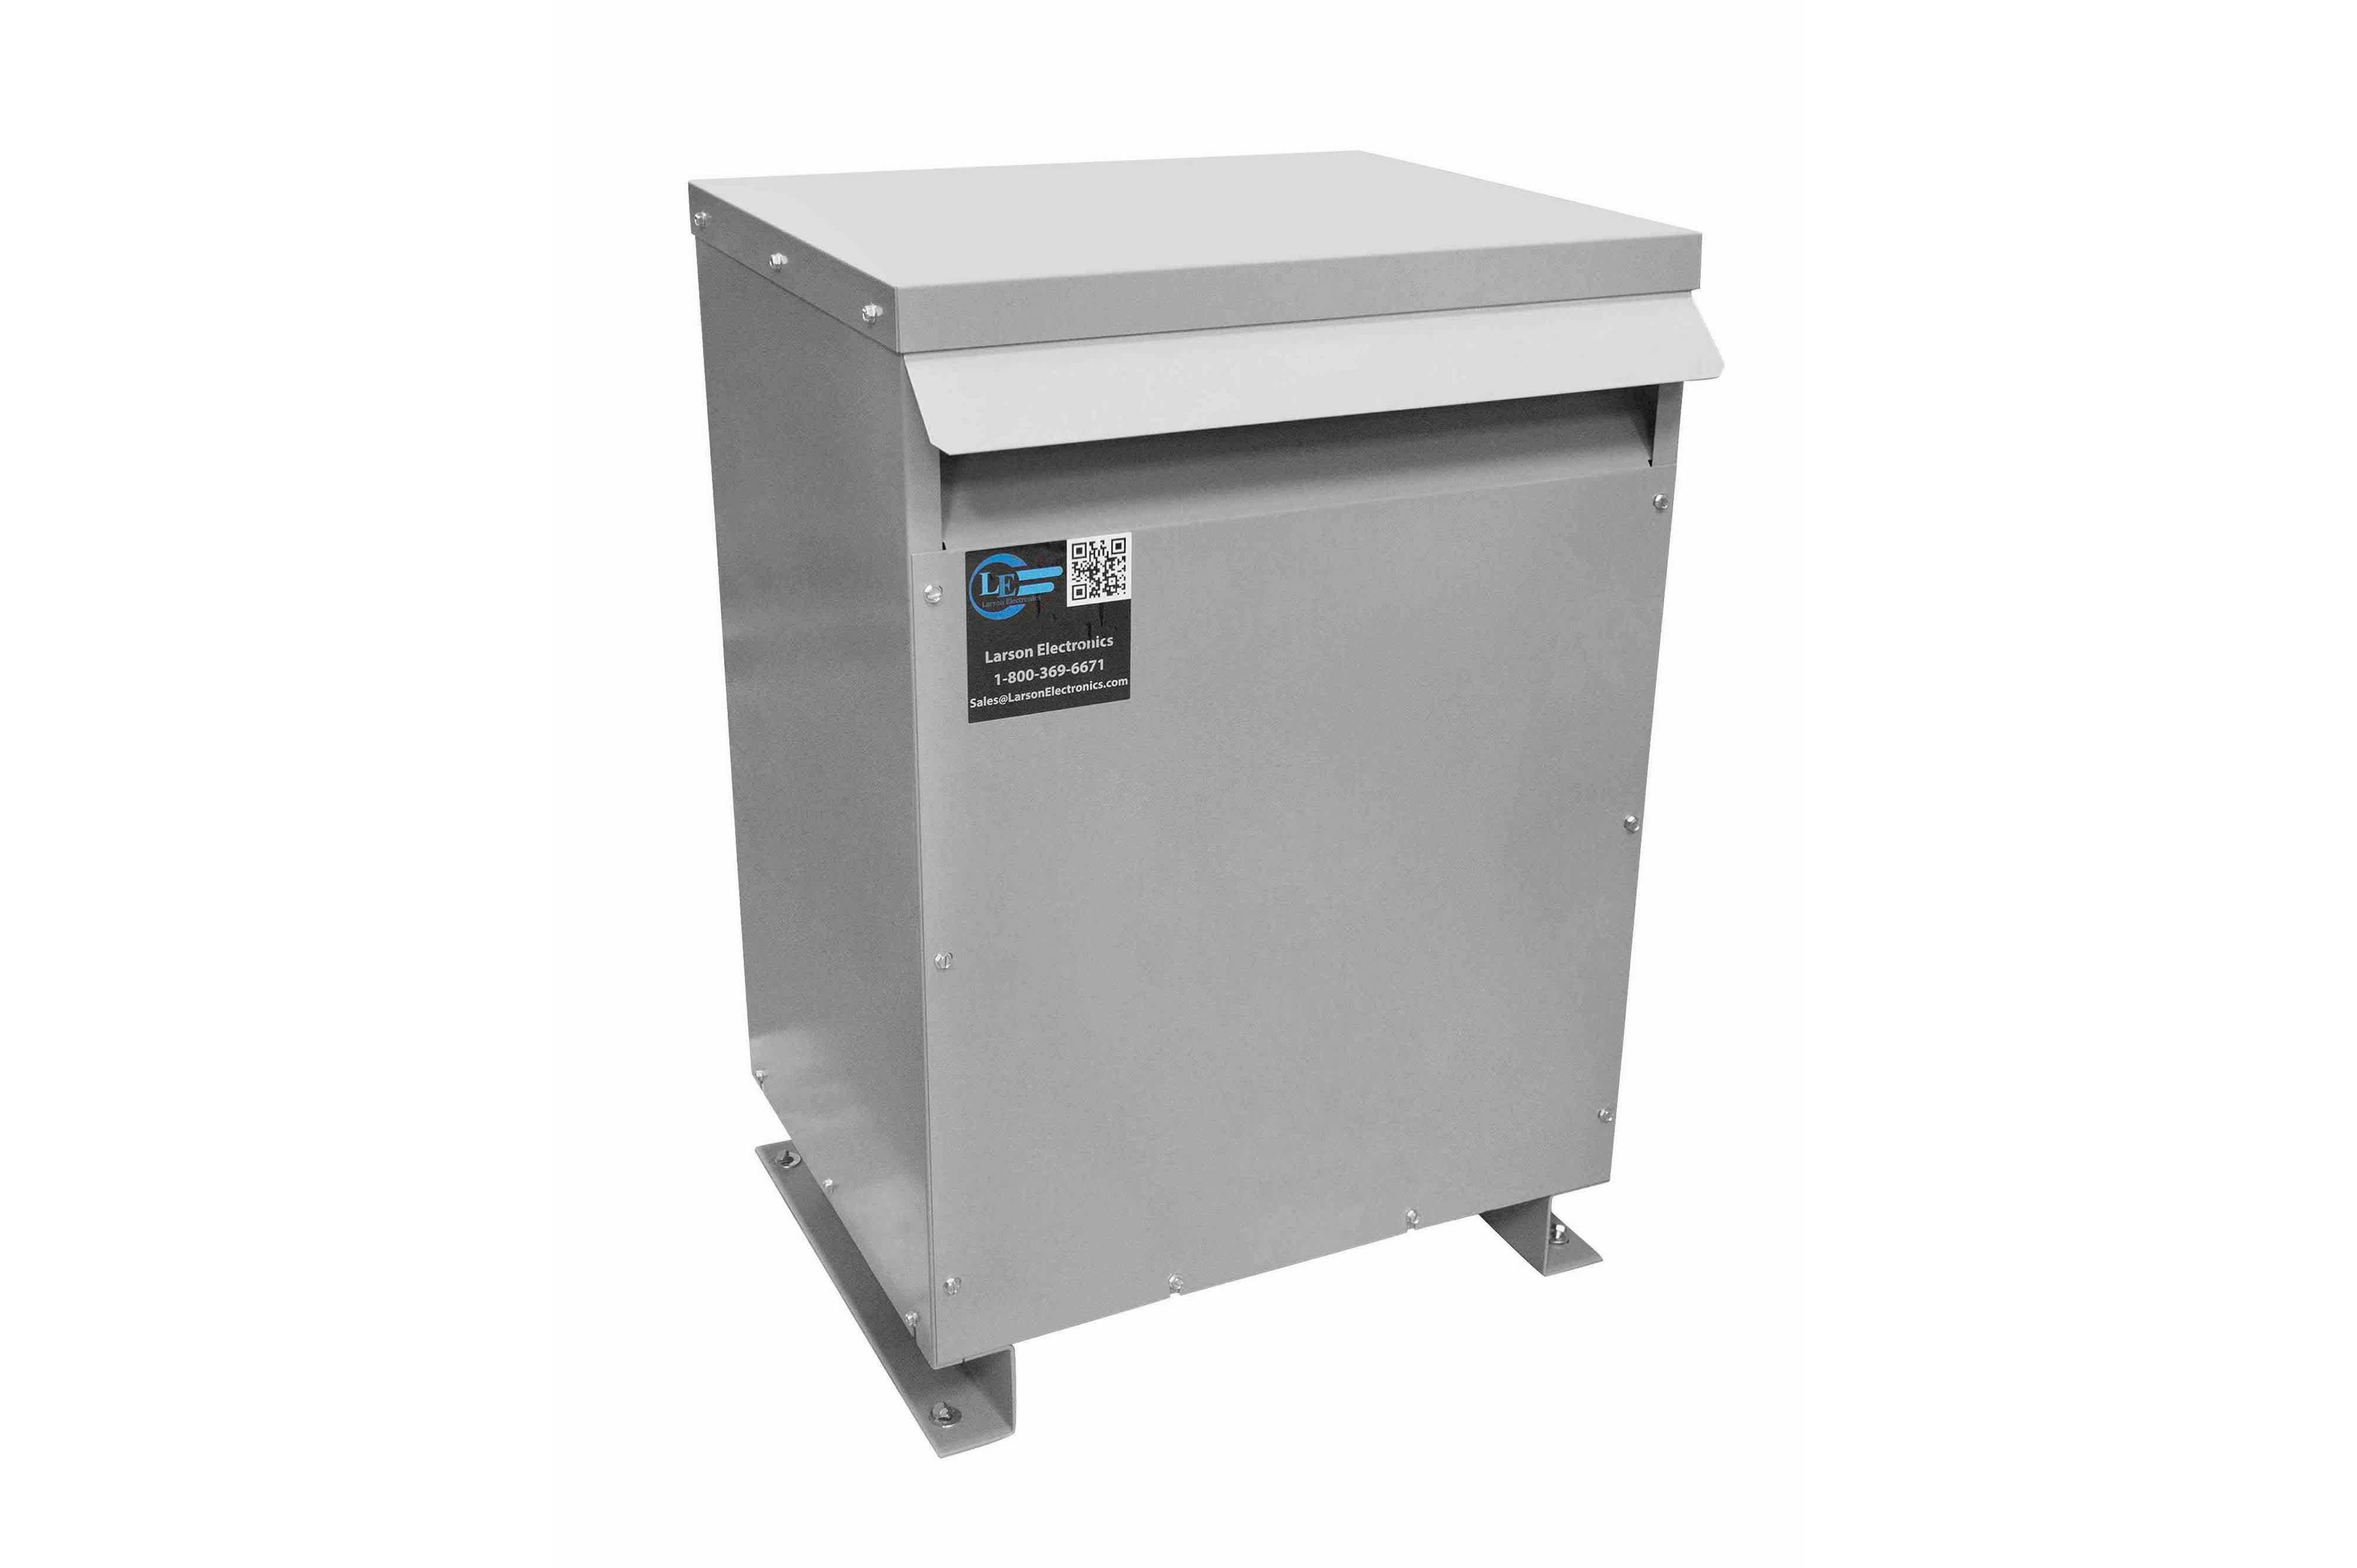 47.5 kVA 3PH Isolation Transformer, 575V Delta Primary, 240 Delta Secondary, N3R, Ventilated, 60 Hz